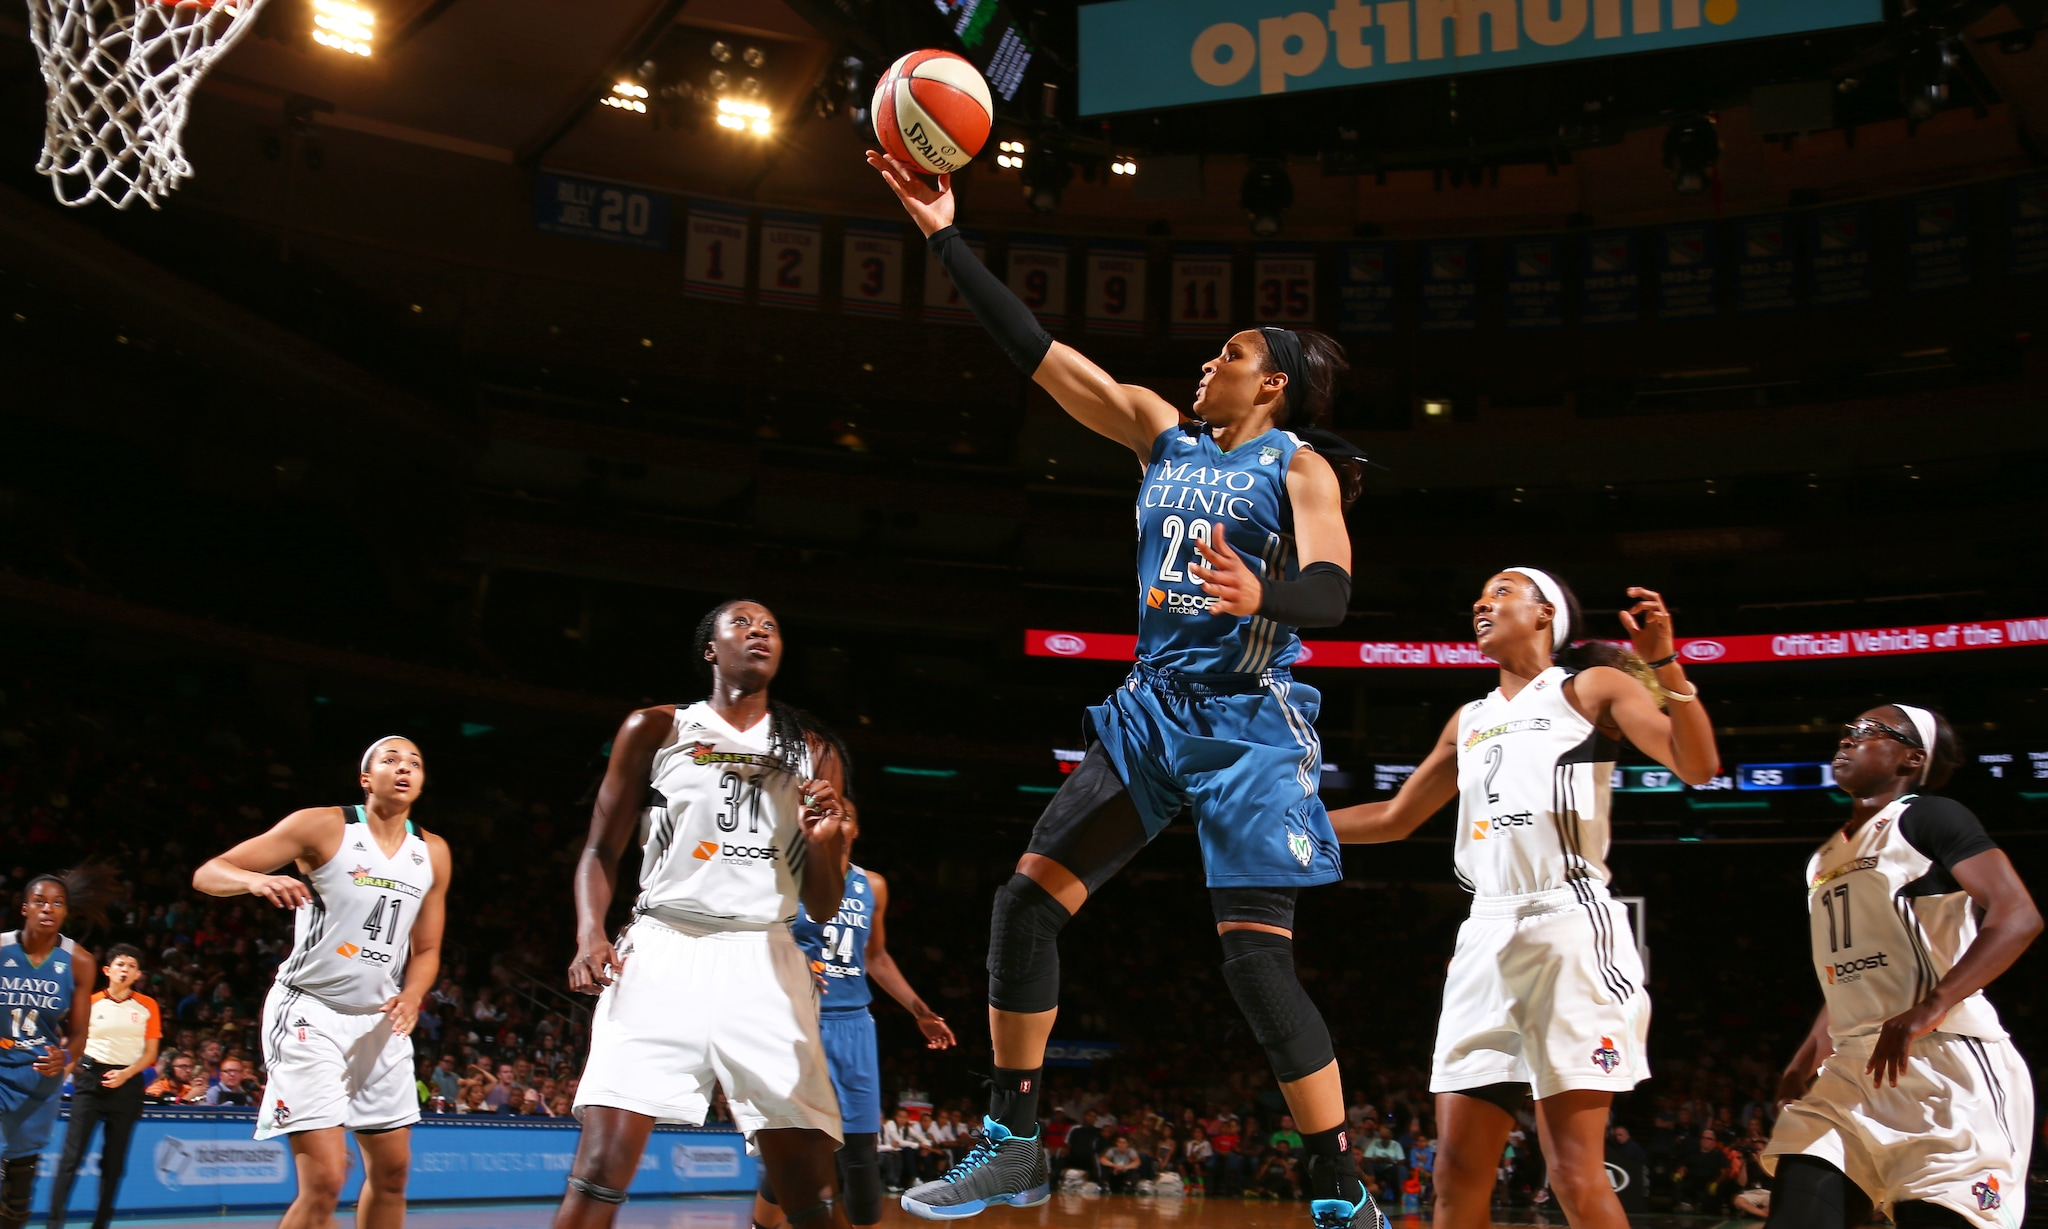 Lynx forward Maya Moore led all scorers on Friday night, pouring in 25 points on 8-of-20 (40 percent) shooting. Moore added nine rebounds, three assists and a steal to round out her stat sheet.